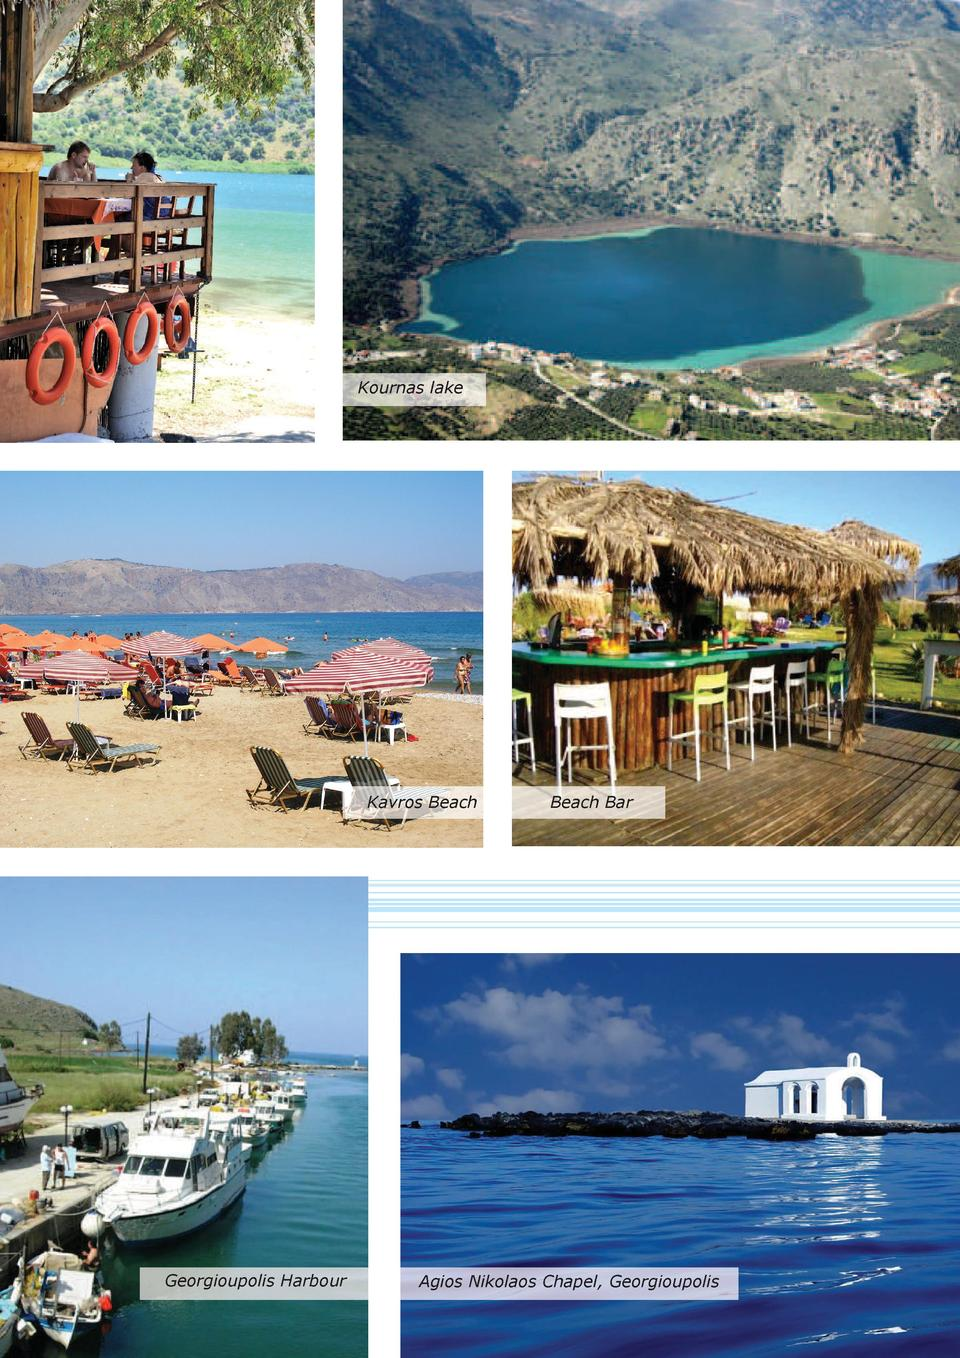 Kournas lake  Kavros Beach  Georgioupolis Harbour  Beach Bar  Agios Nikolaos Chapel, Georgioupolis